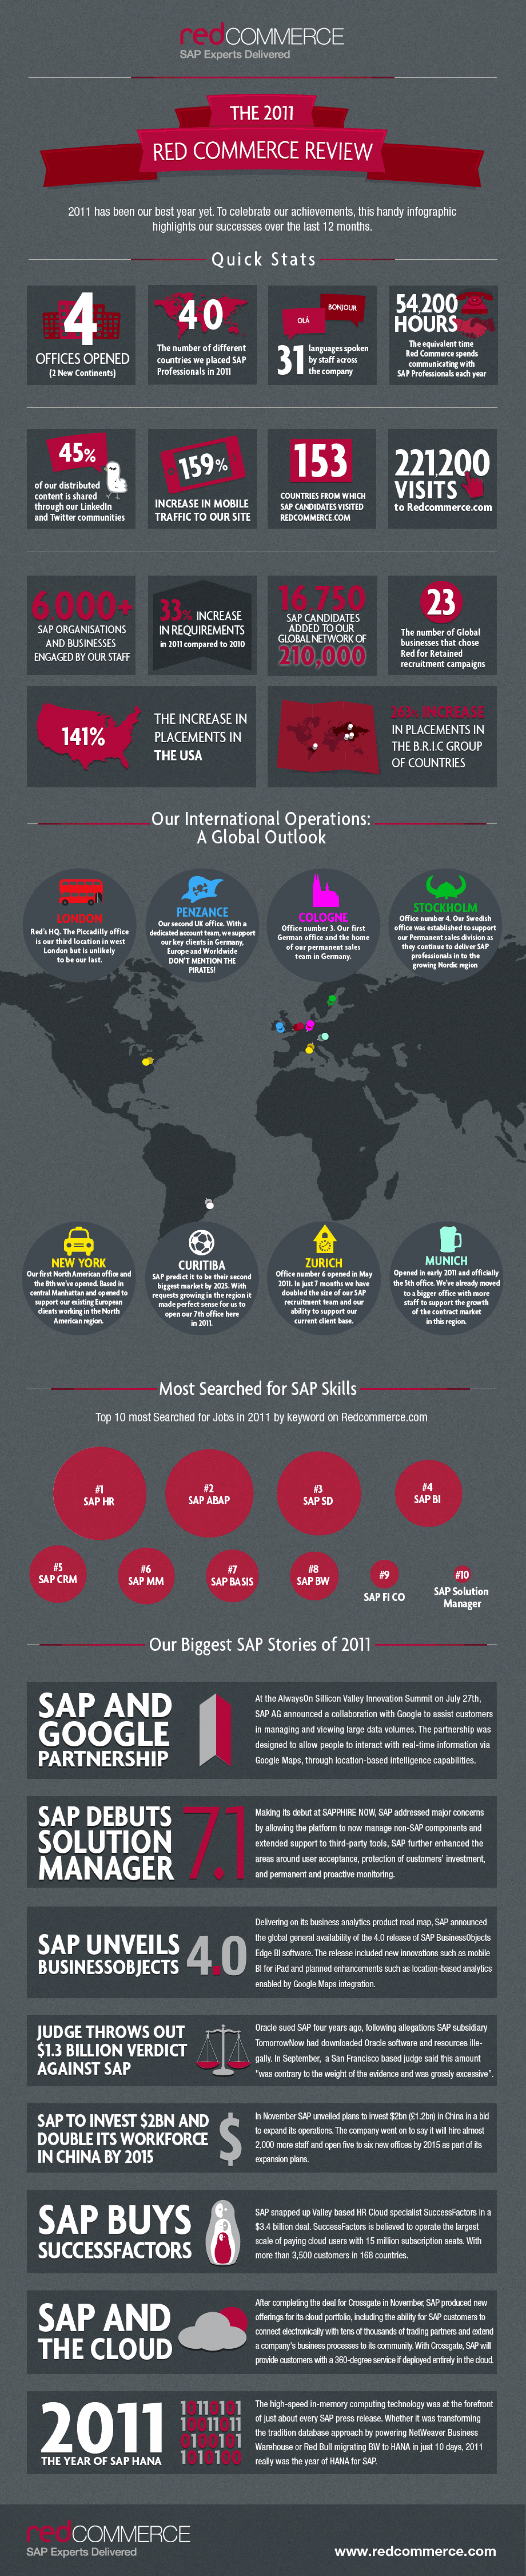 Red Commerce SAP Recruitment 2011 Infographic